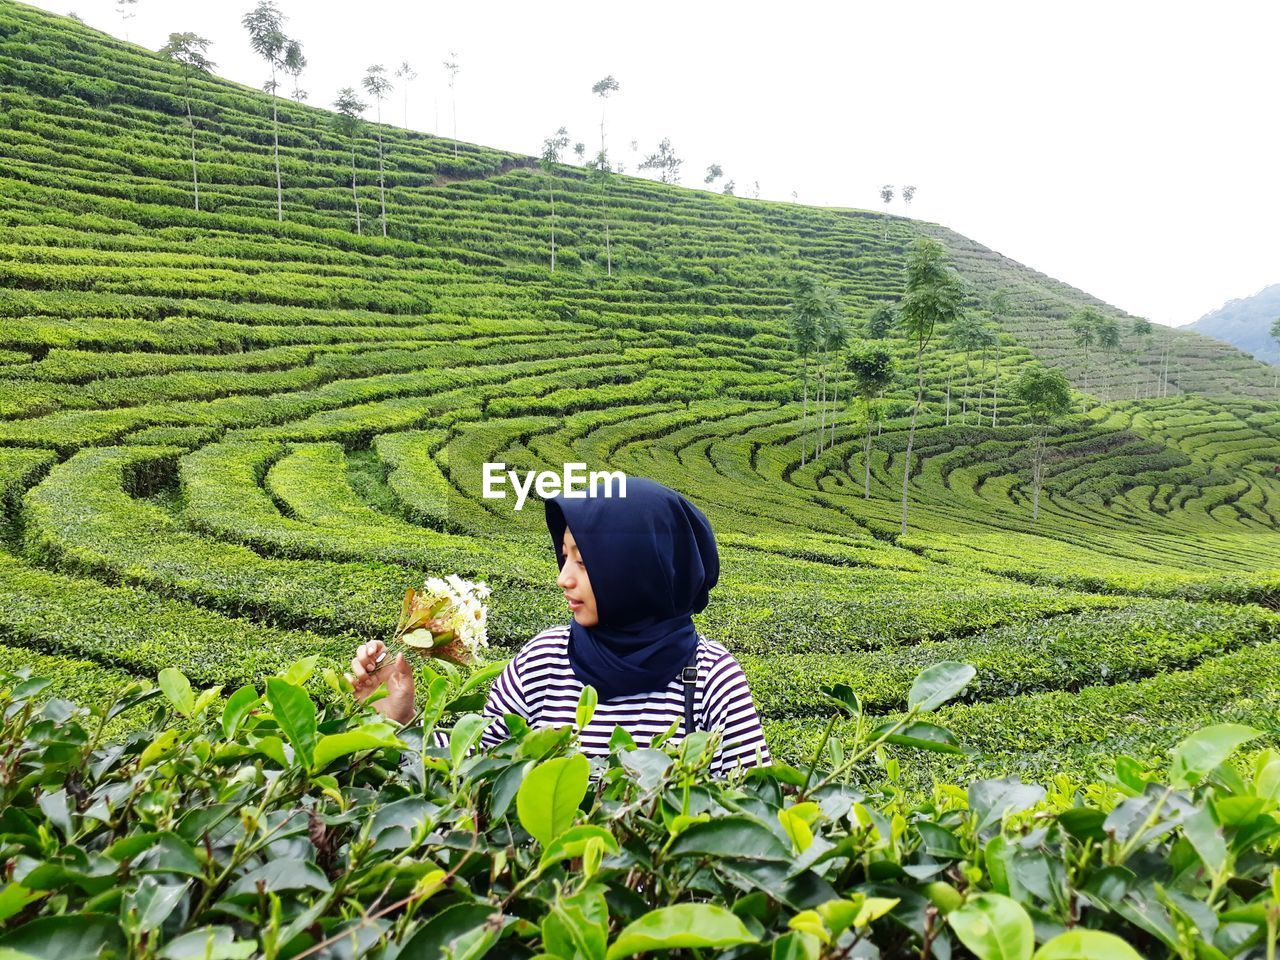 agriculture, farm, real people, field, women, tea crop, one person, landscape, rear view, rice paddy, growth, cultivated land, crop, rice - cereal plant, nature, plant, terraced field, rural scene, casual clothing, asian style conical hat, outdoors, farmer, day, beauty in nature, lifestyles, mountain, scenics, young women, young adult, sky, adult, people